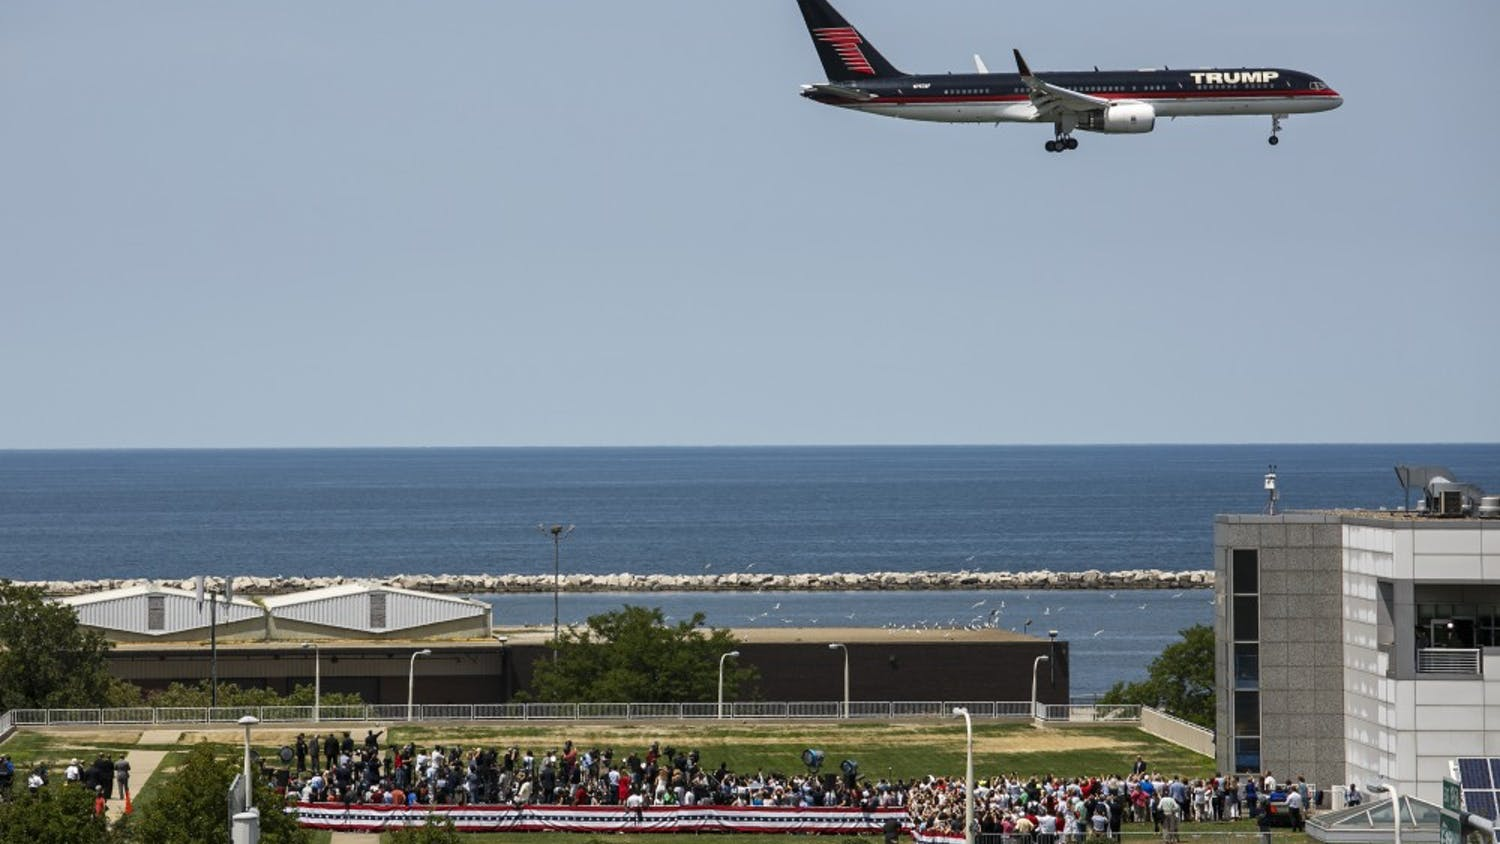 Donald Trump arrives in his airplane as he flies over a campaign rally at the Great Lakes Science Center during the Republican National Convention in Cleveland on Wednesday, July 20, 2016. (Marcus Yam/Los Angeles Times/TNS)